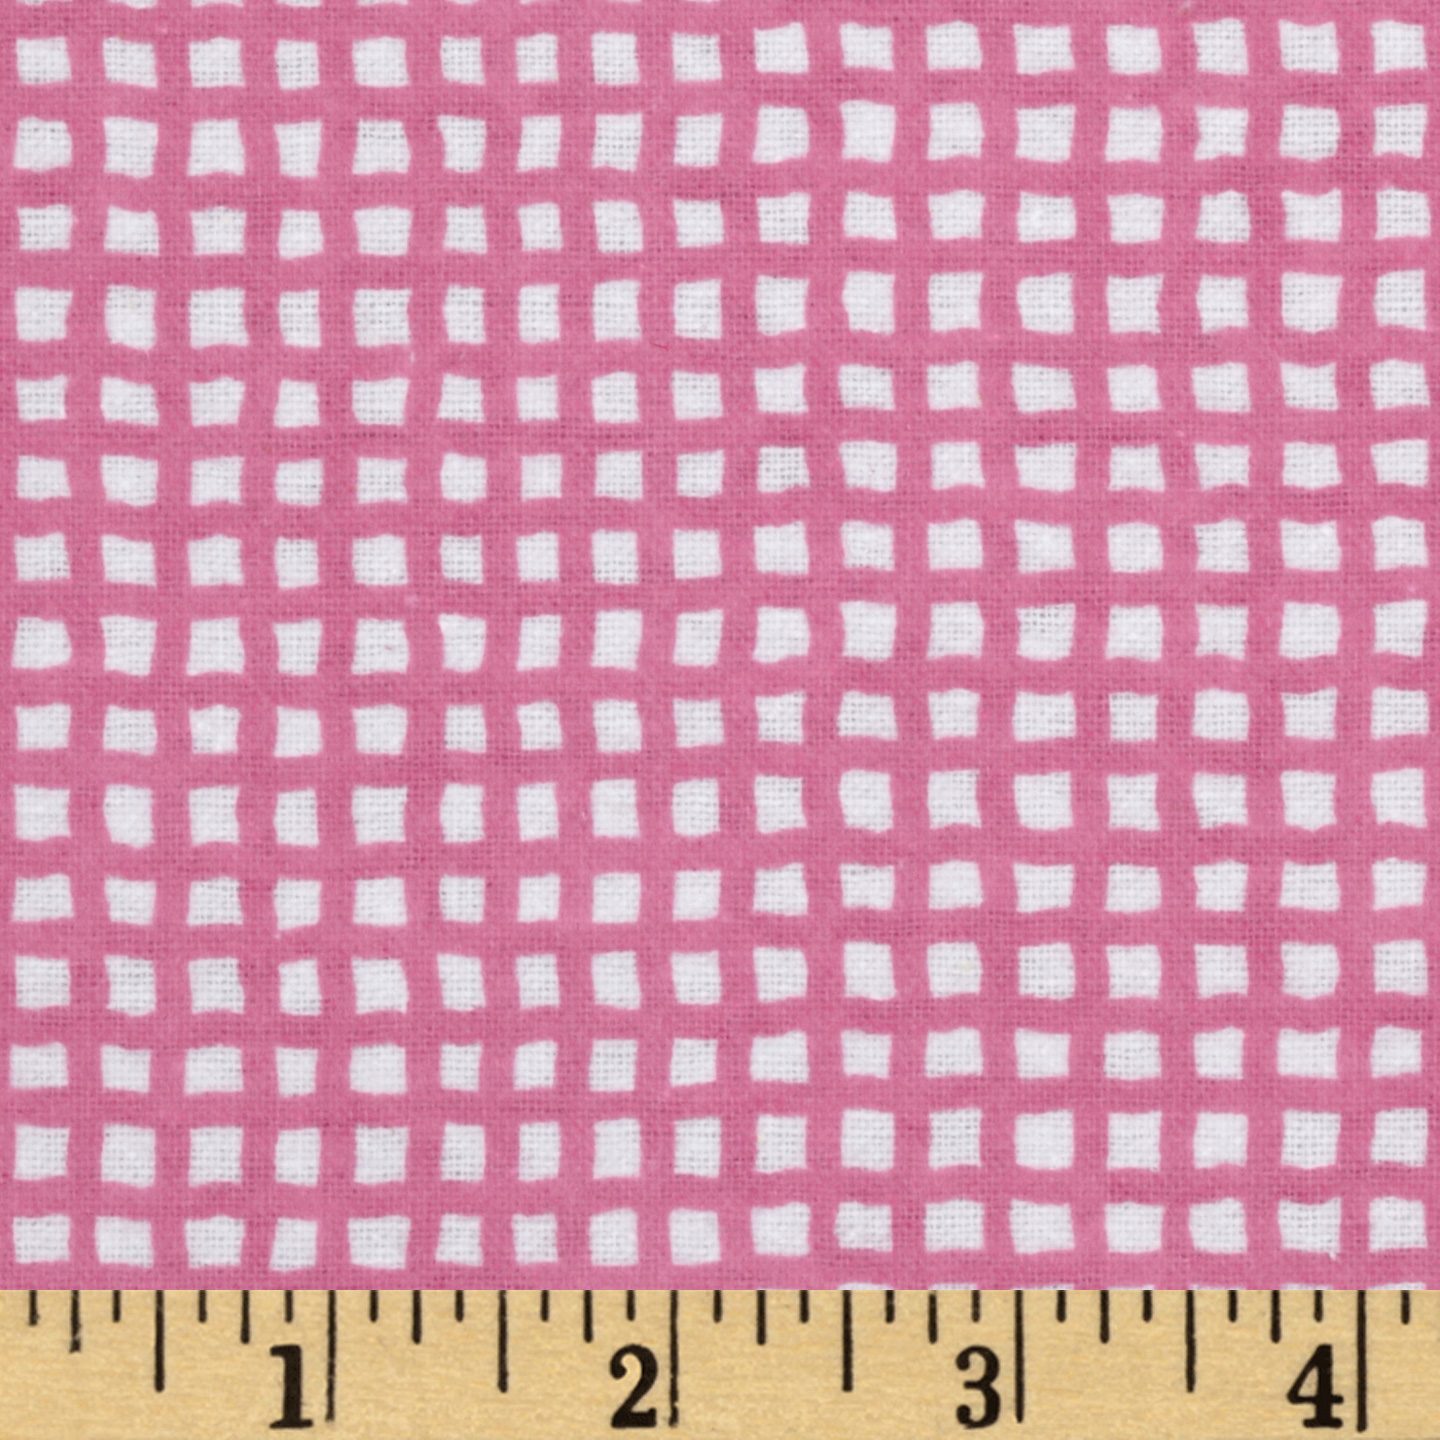 Alpine Flannel Basics Check Bright Pink/White Fabric